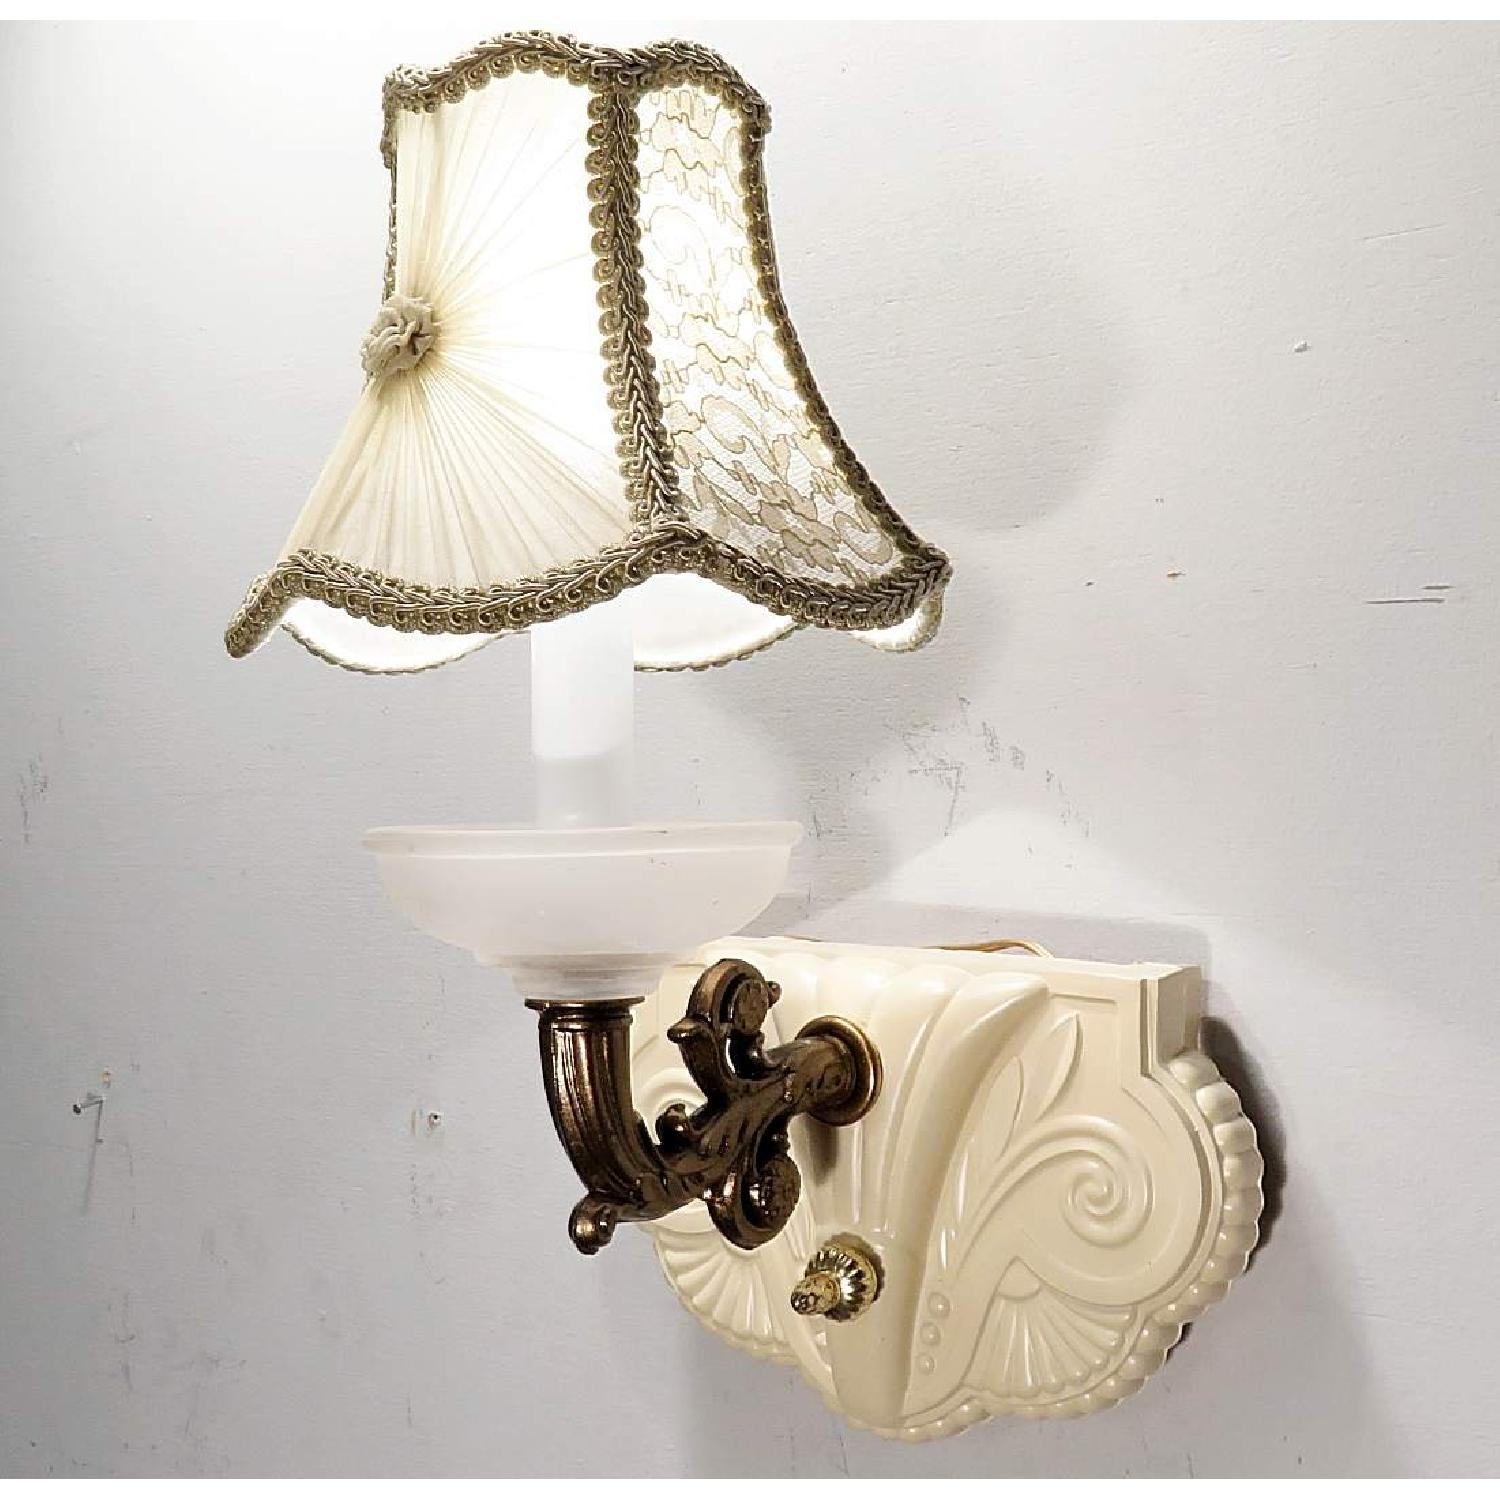 Vintage Glass Art Deco Sconces w/ Hand-Made Shades - Pair - image-4